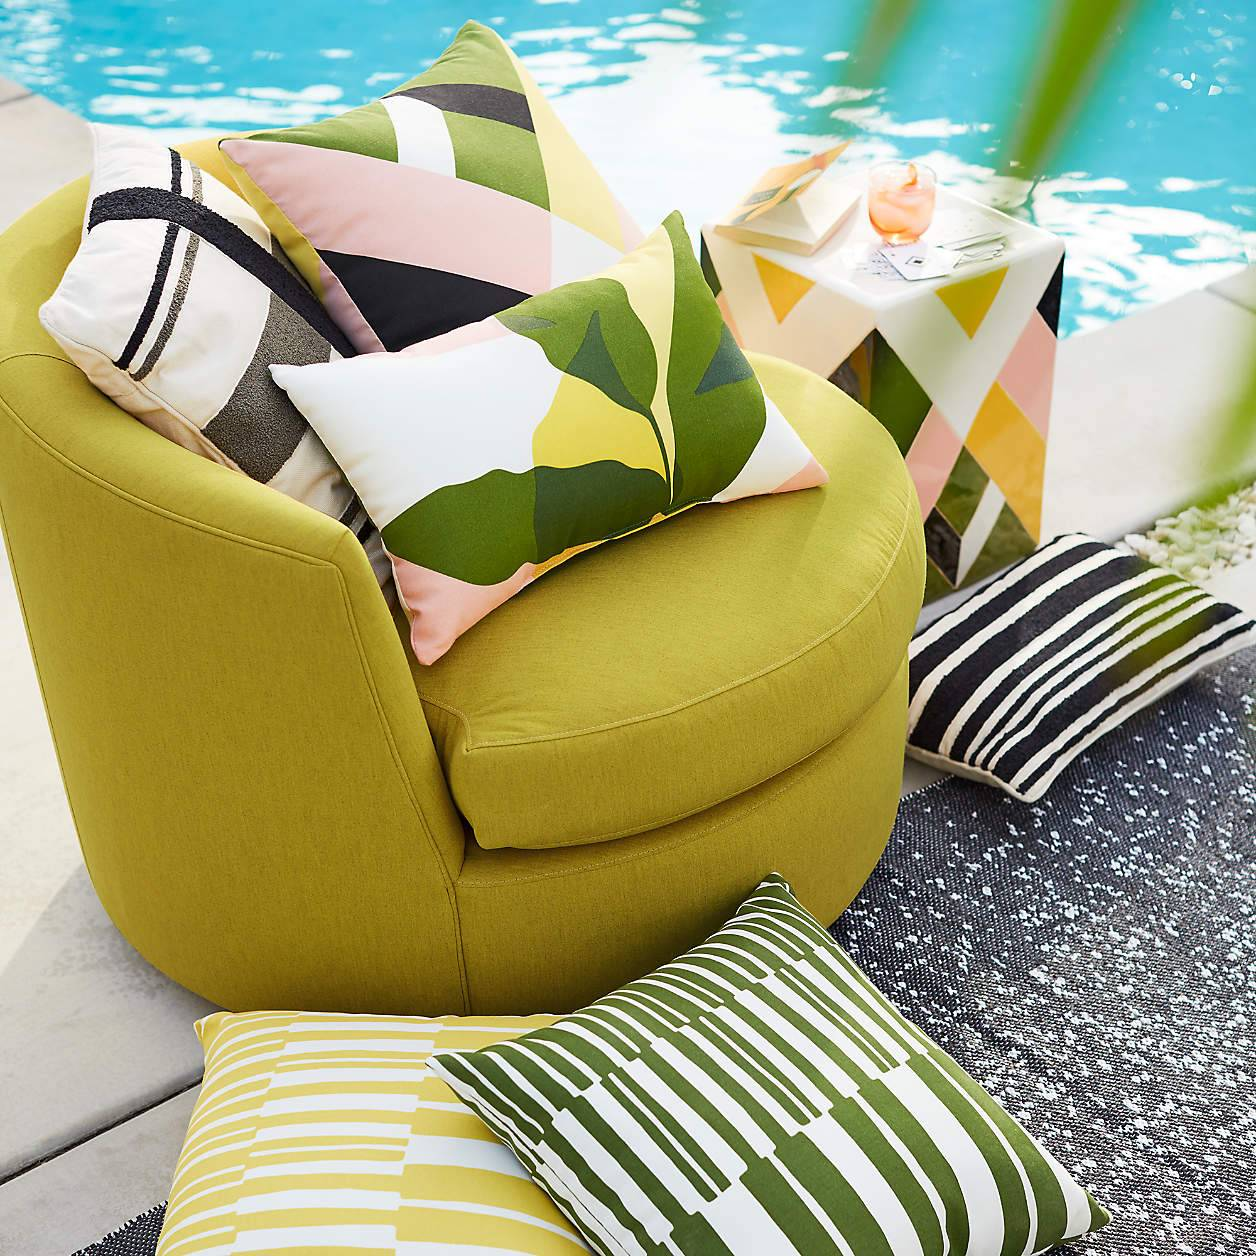 Large Lounge Patio Outdoor Chair Throw Pillows Pool